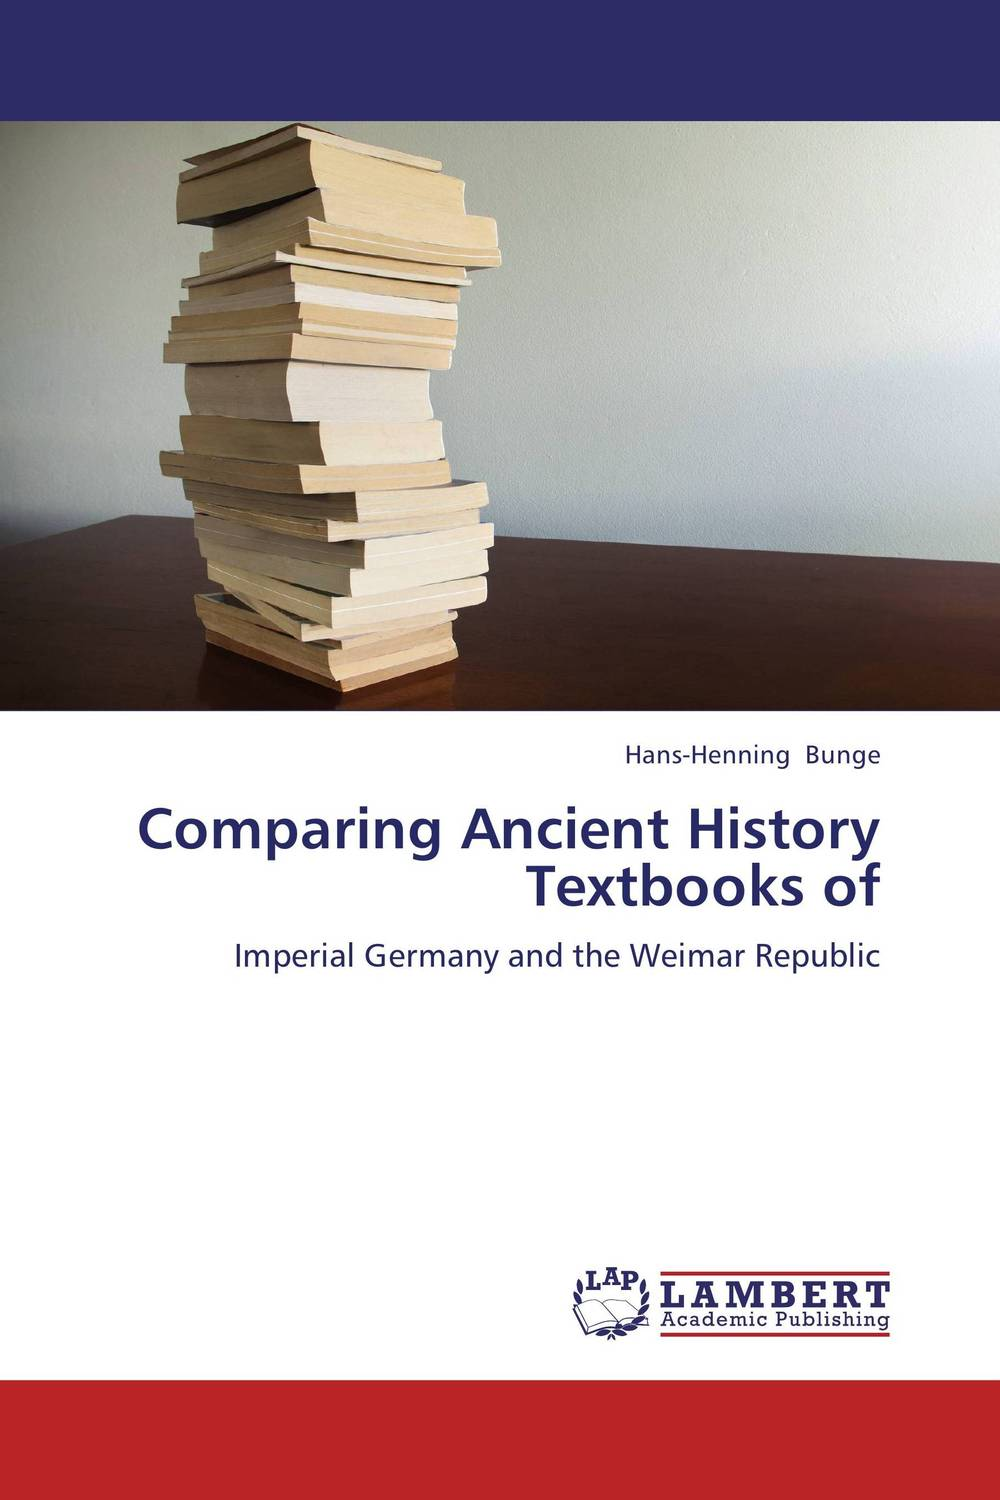 Comparing Ancient History Textbooks of